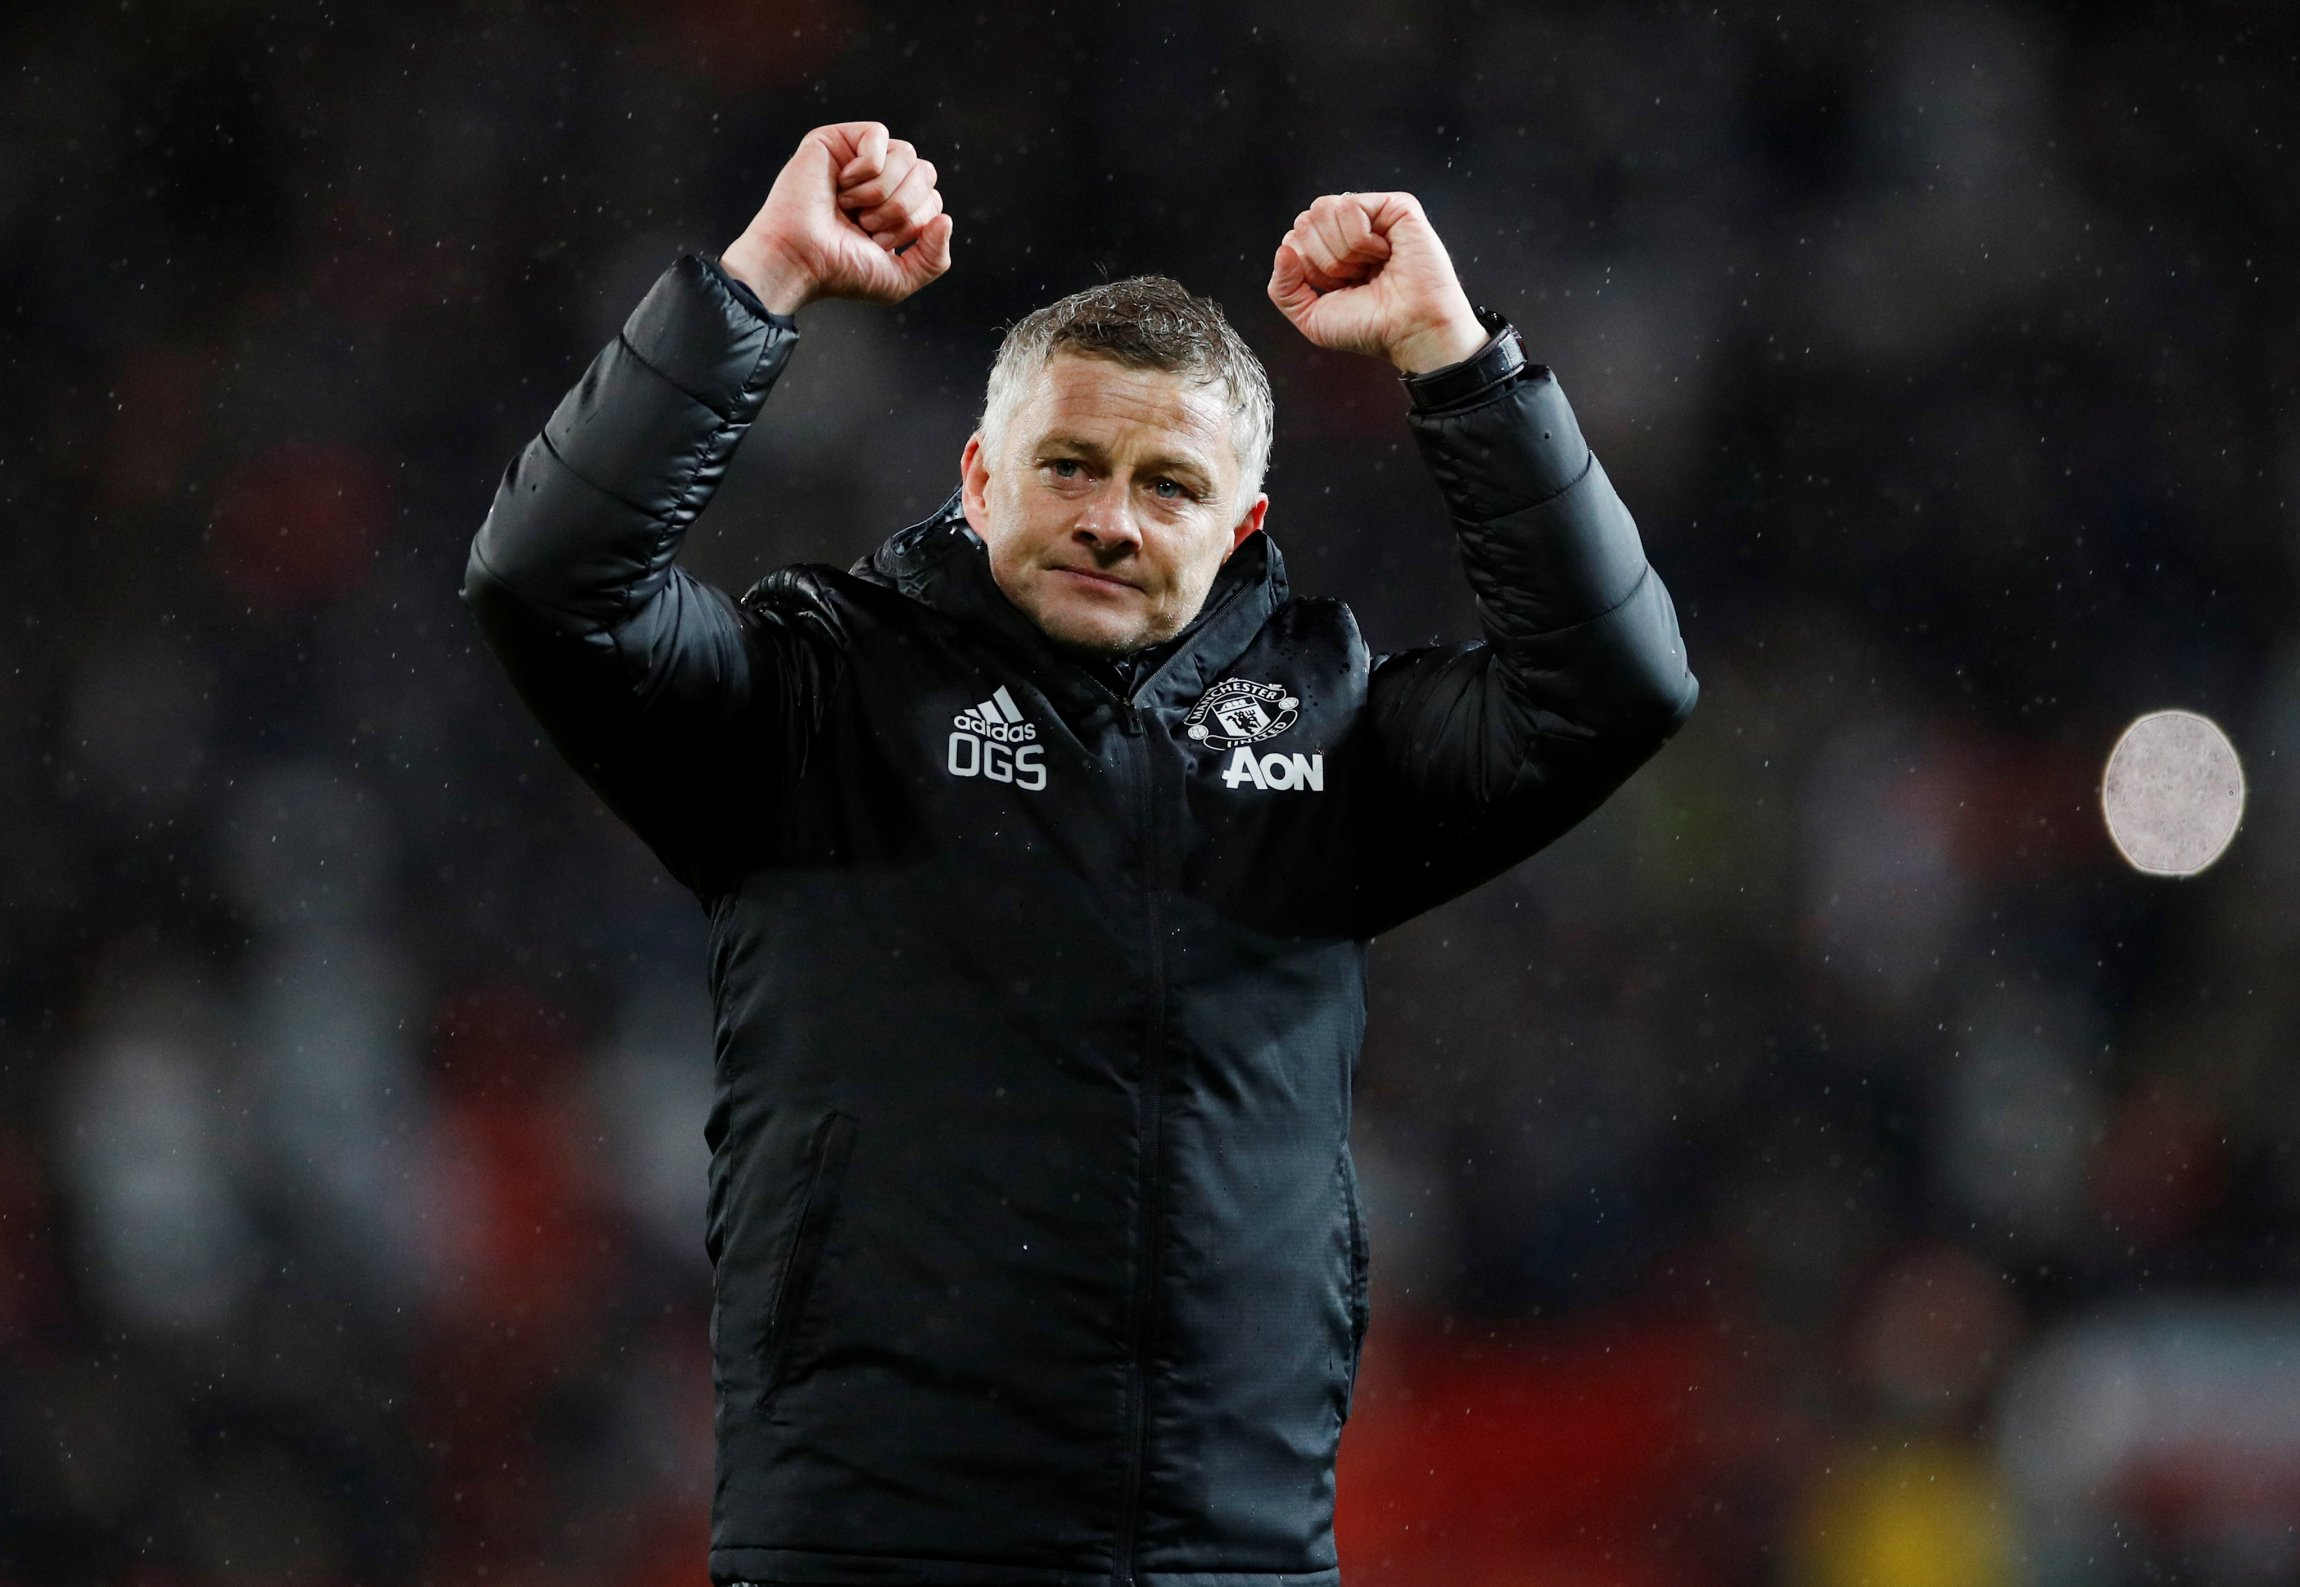 Ole Gunnar Solskjaer S Best Quotes As Manchester United Manager Utdreport